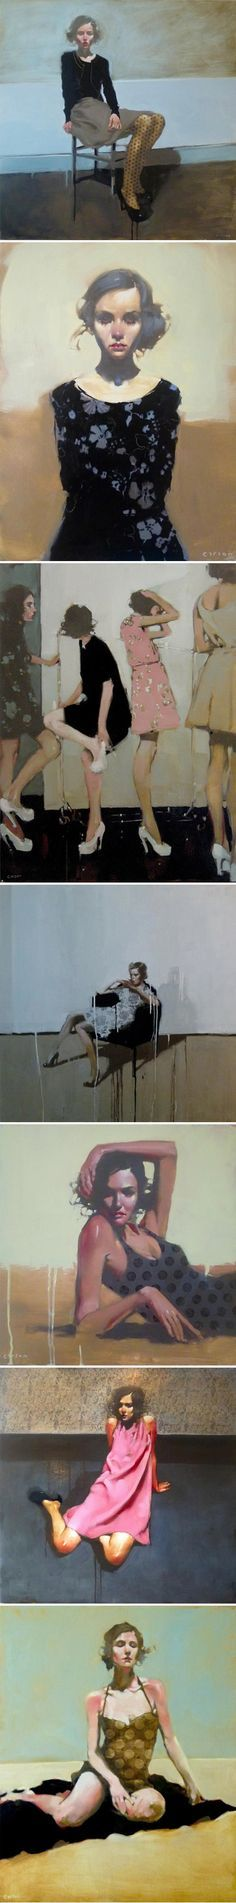 michael carson - polka dots, flat florals, and pretty girls <3